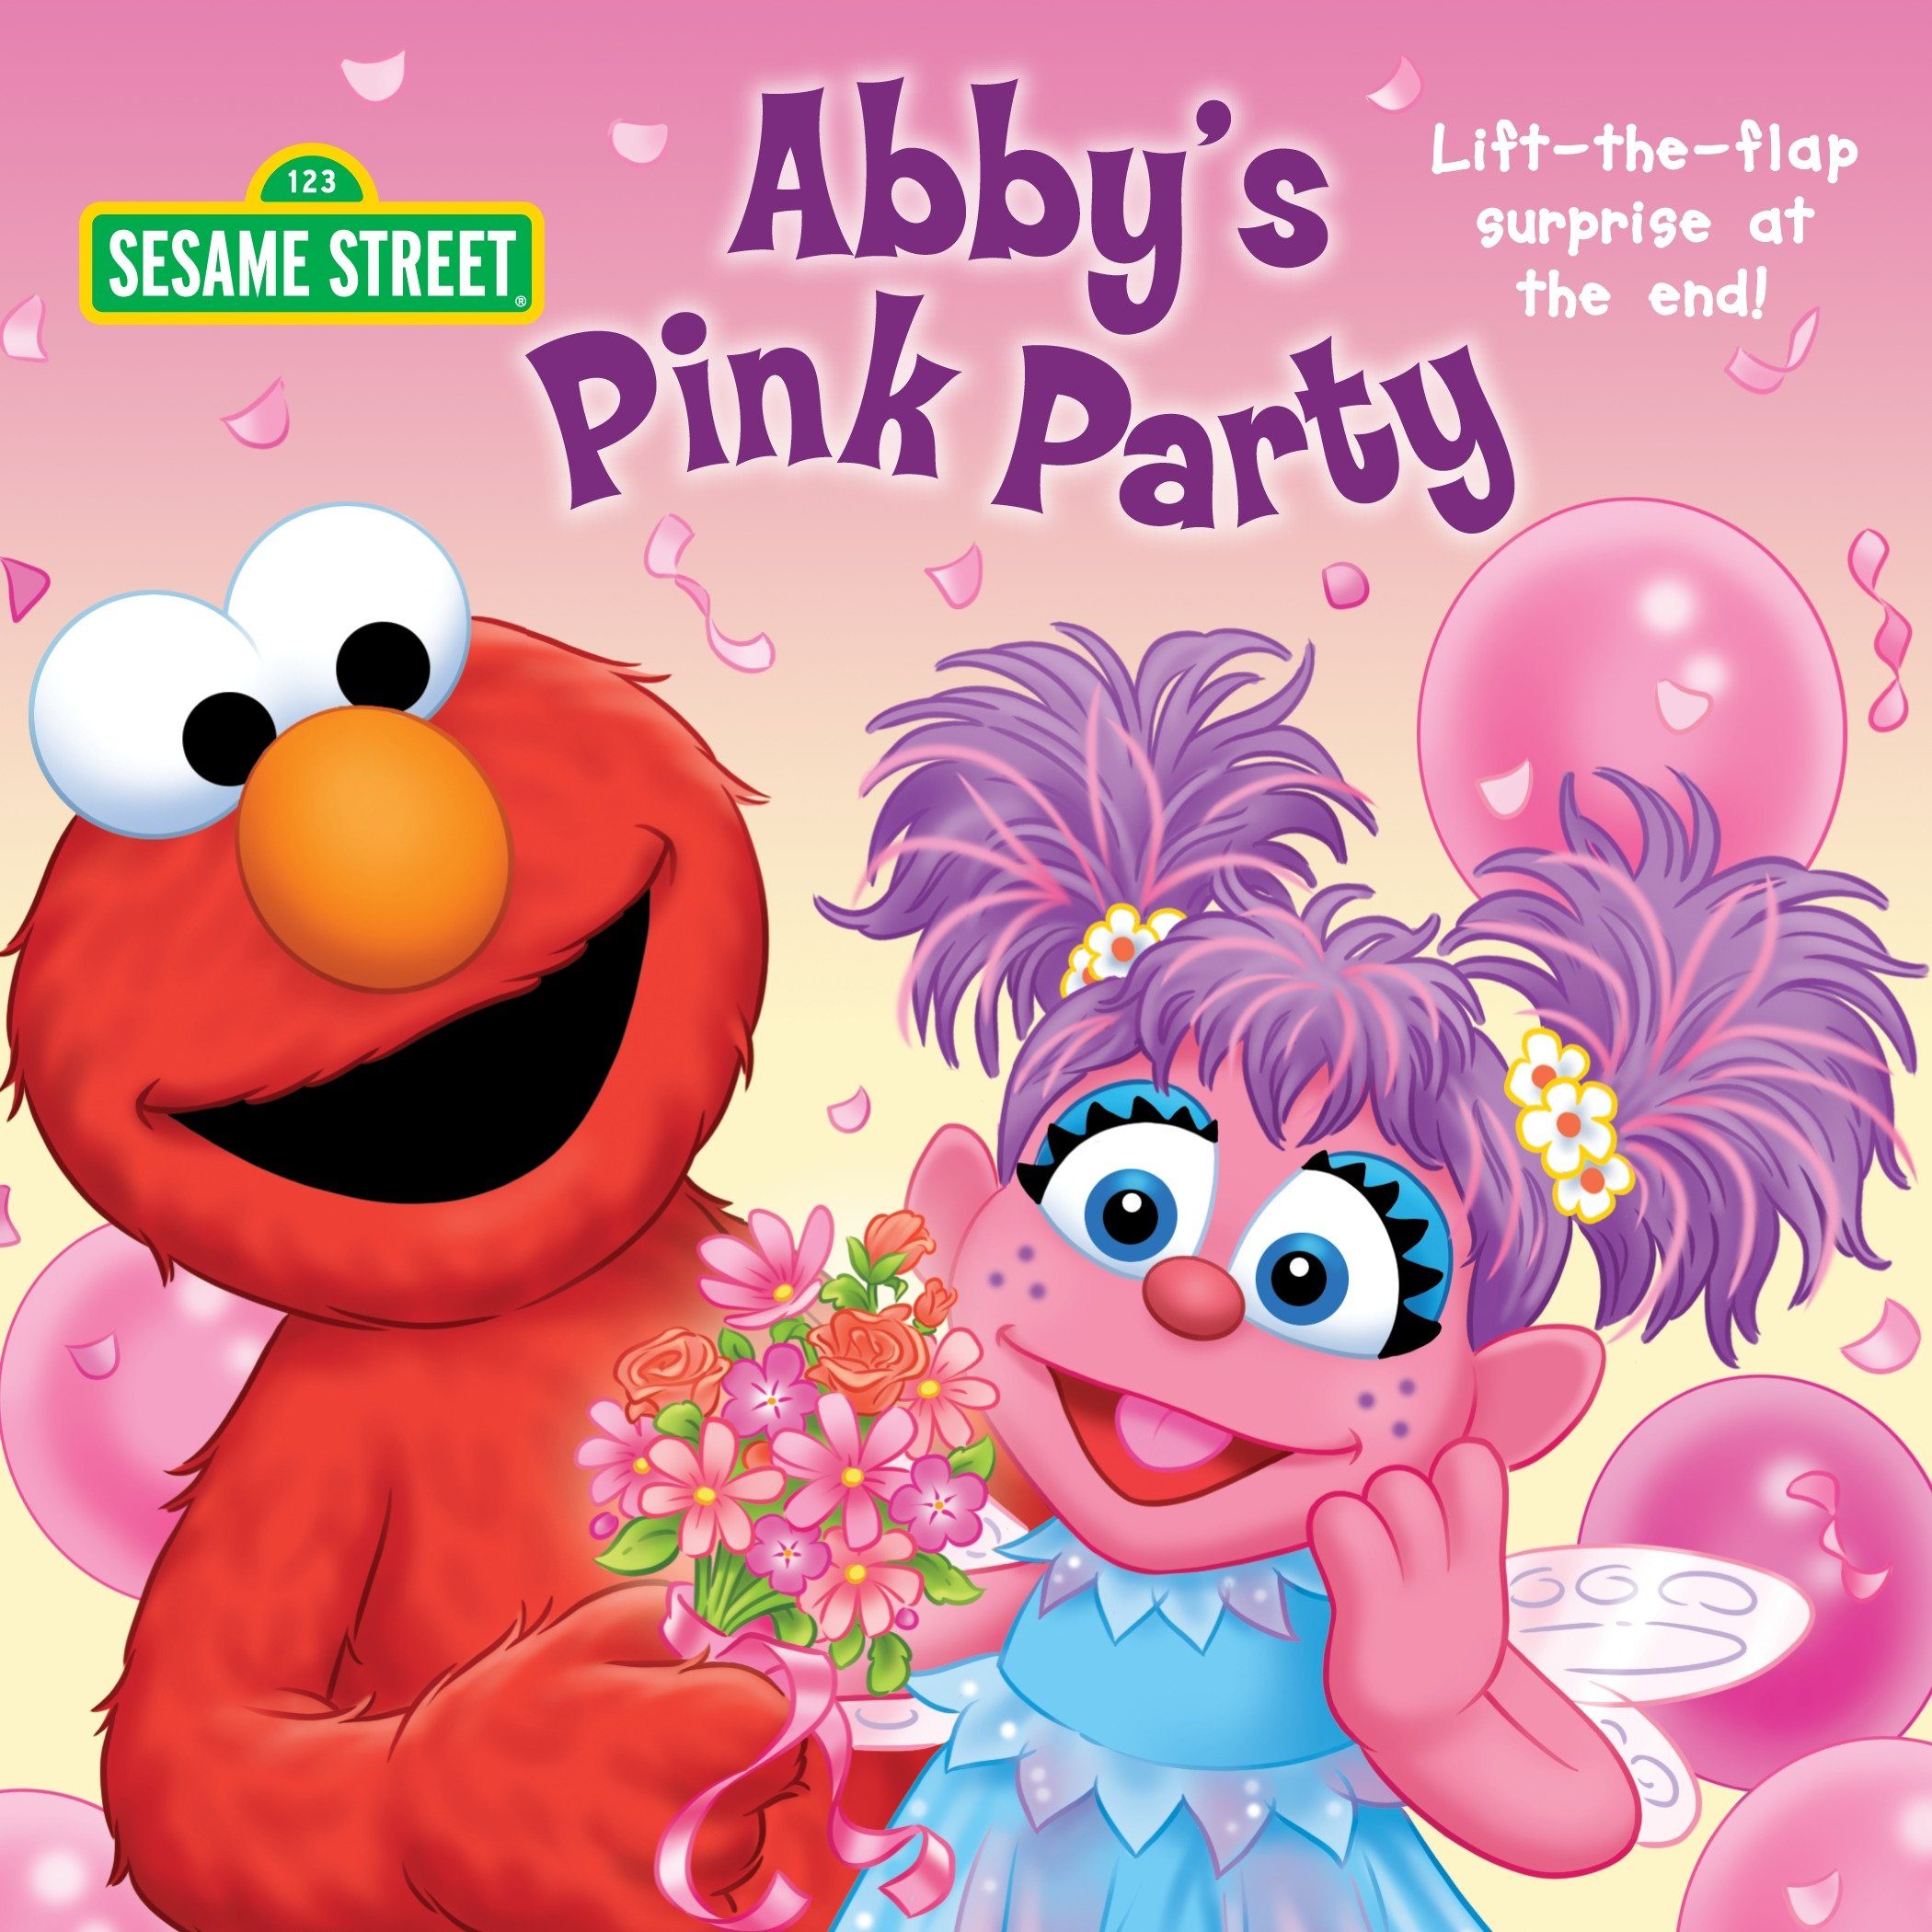 Abby's pink party cover image